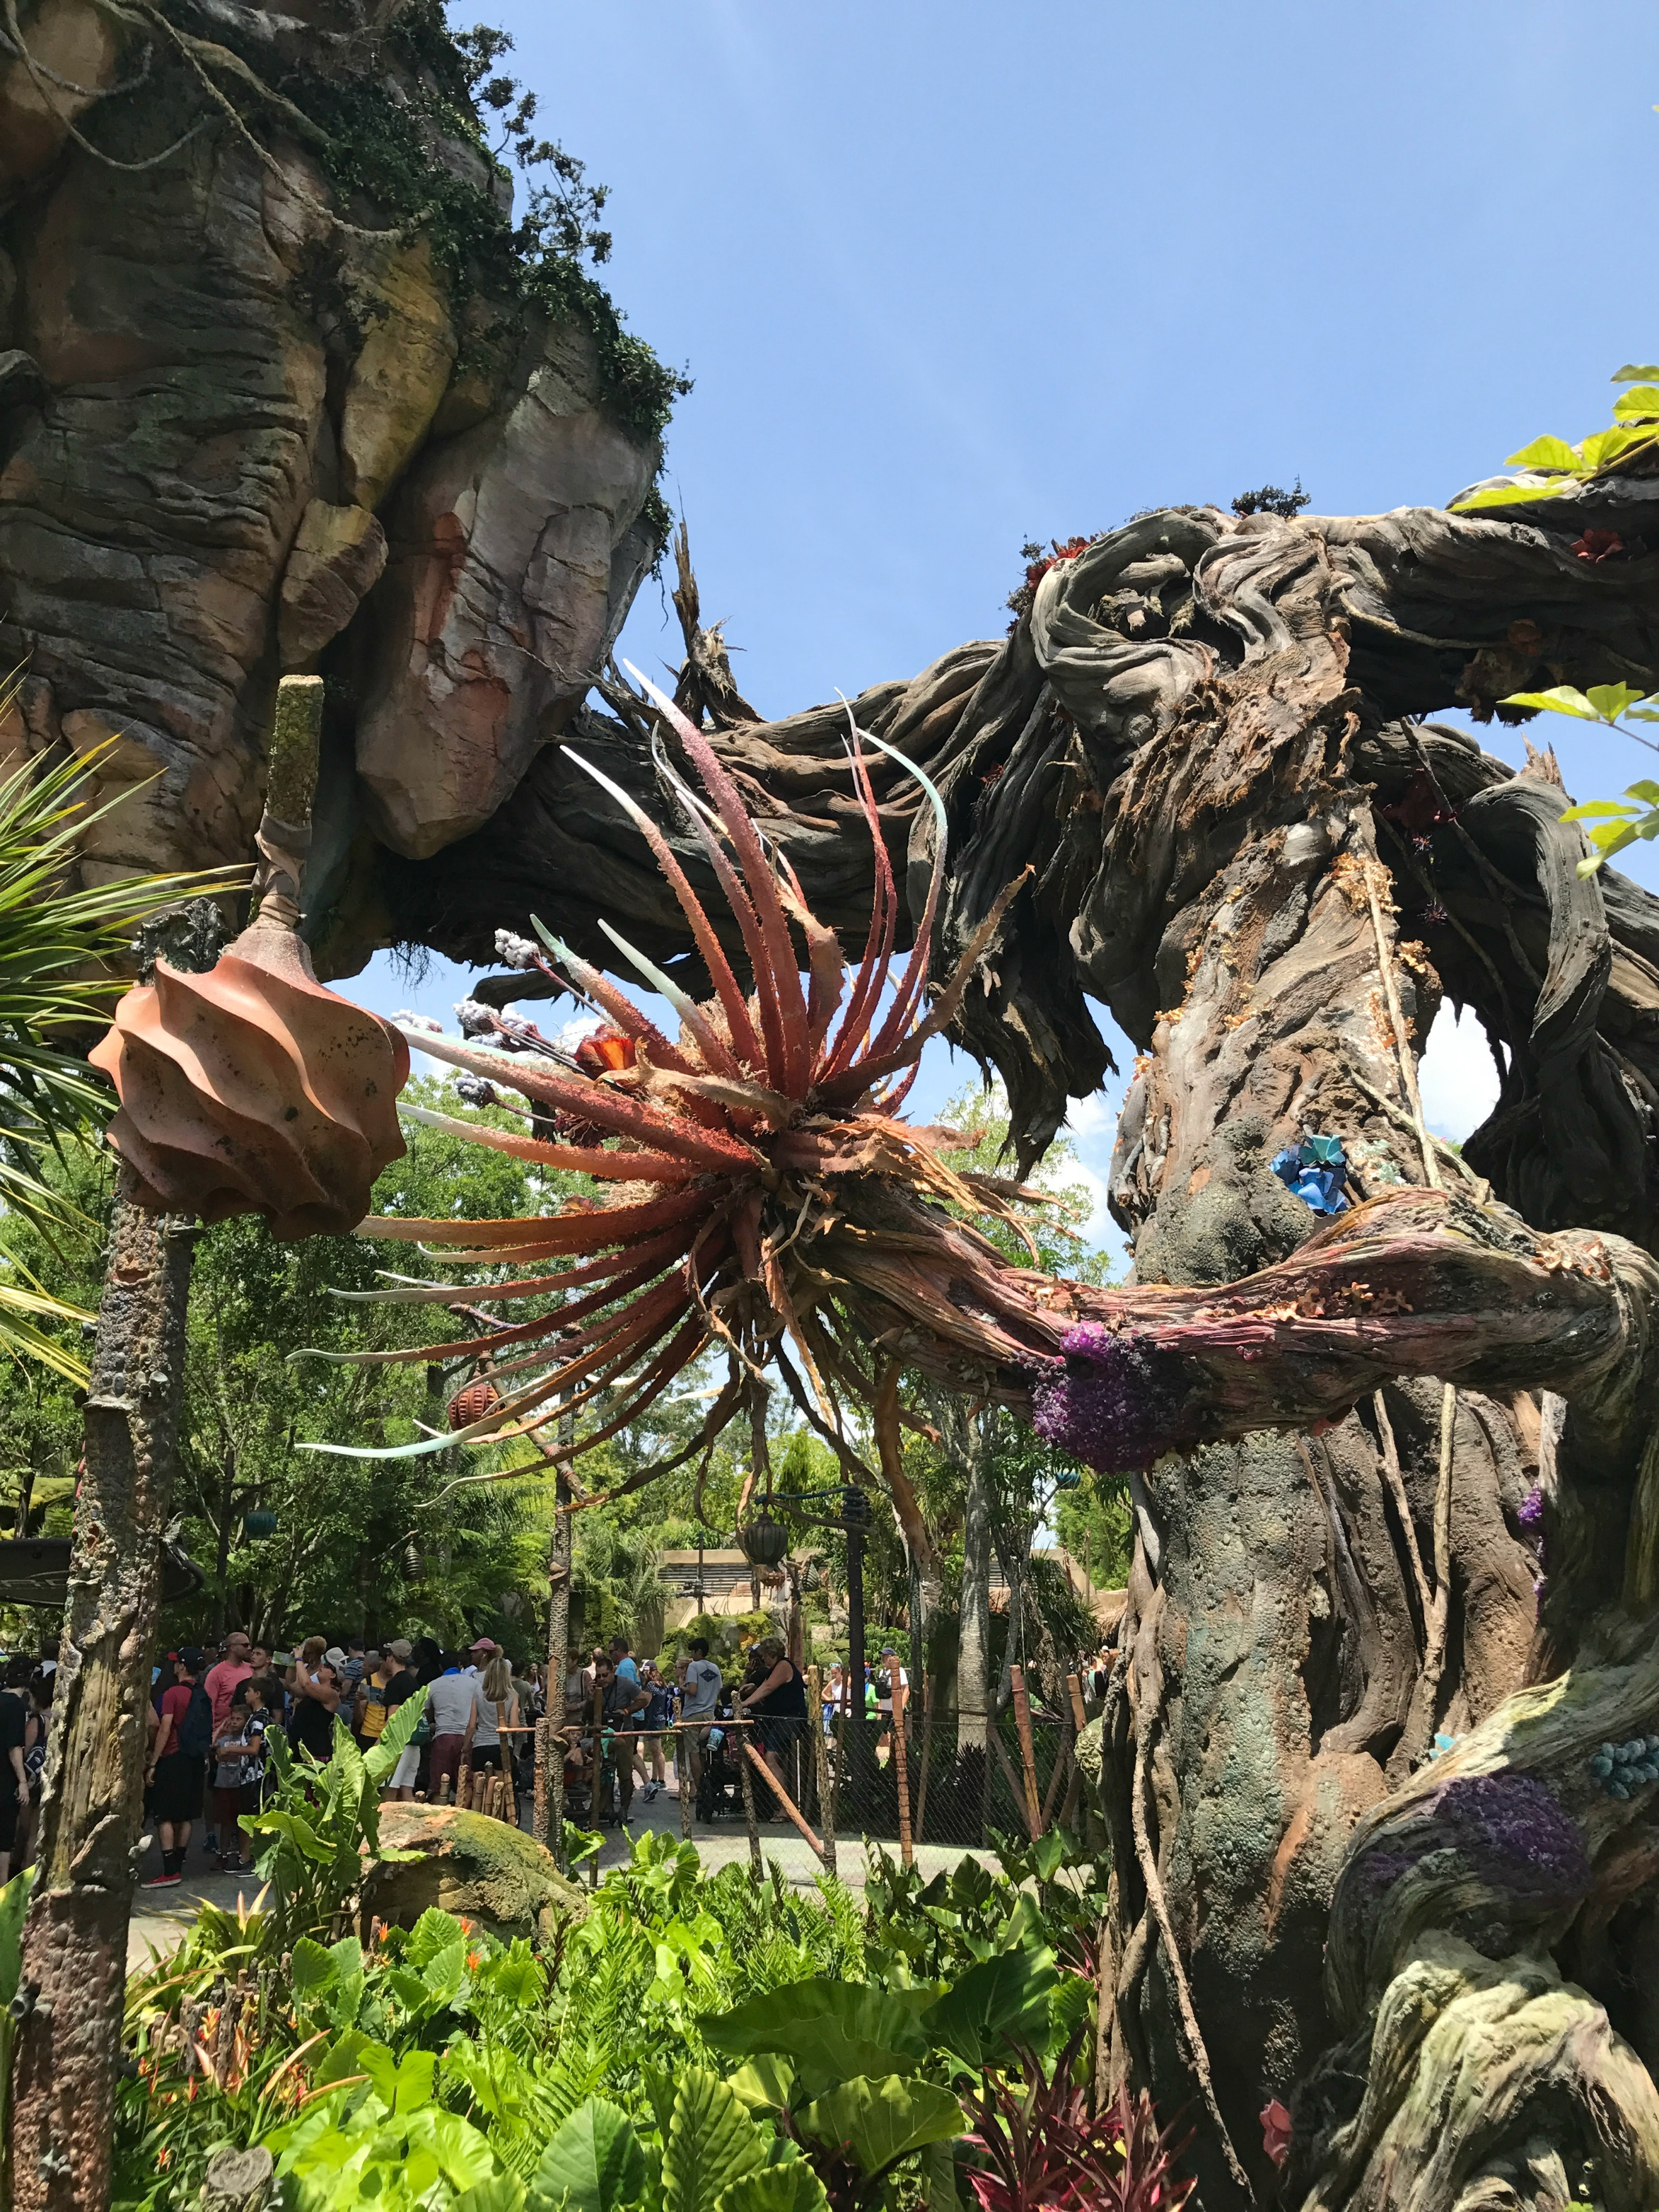 Visiting Disney's Pandora Flowers